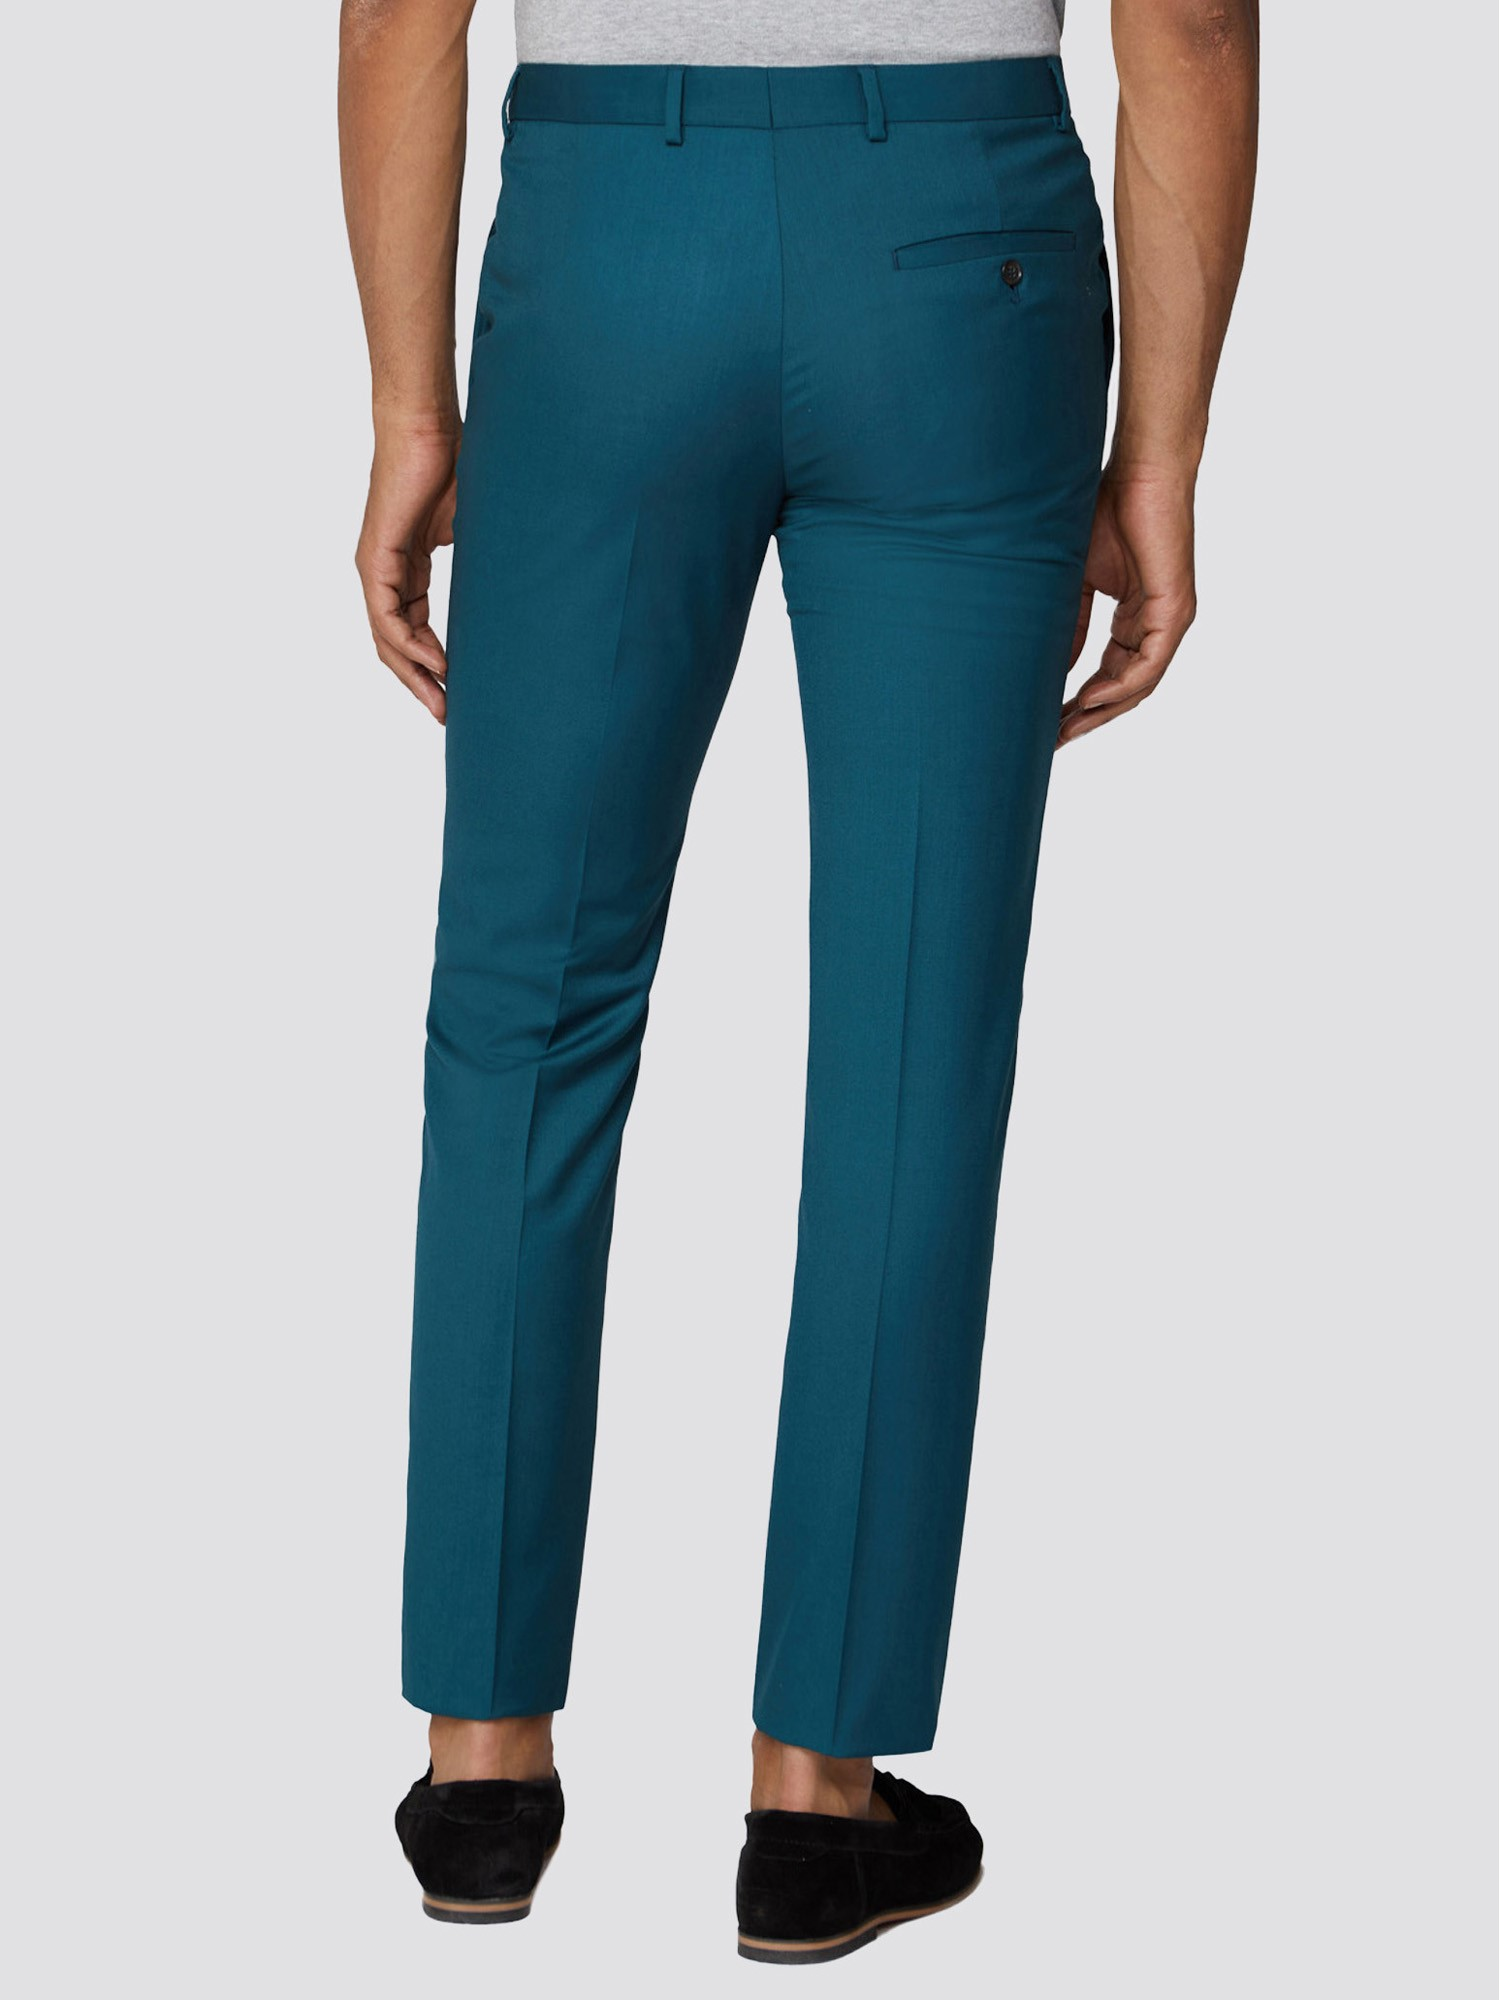 Teal Twill Skinny Fit Suit